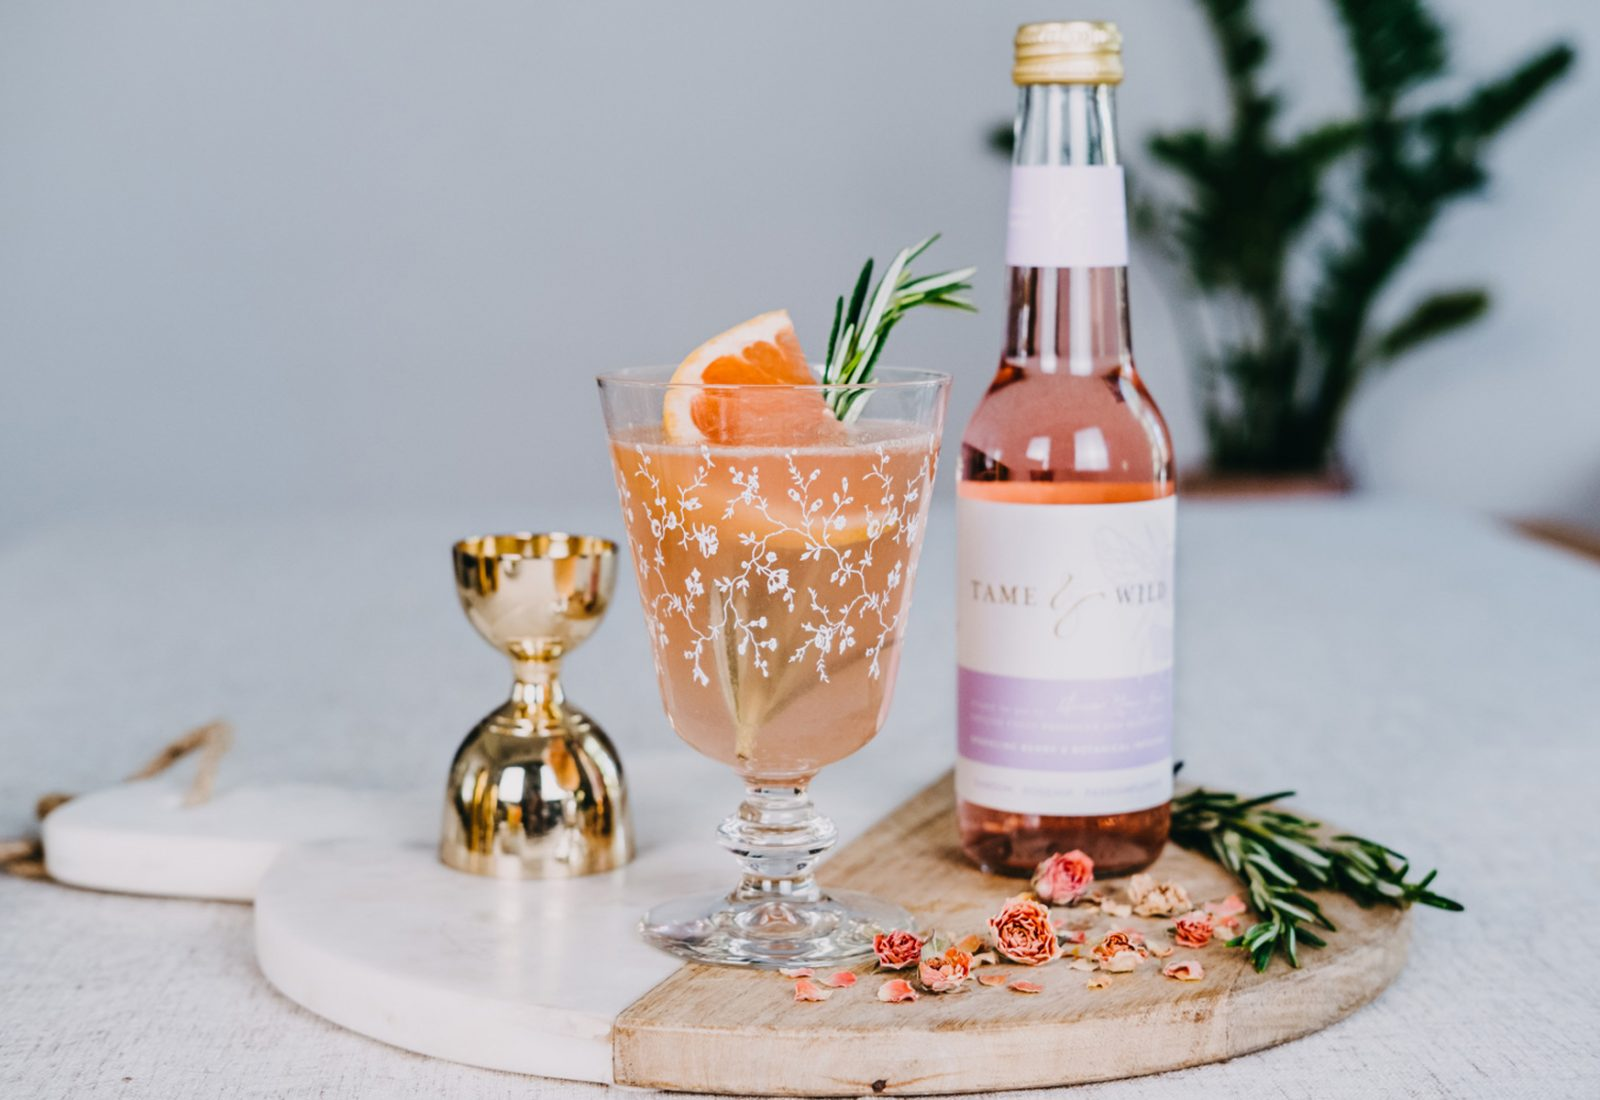 A bottle of Tame and Wild drink, with a glass of cocktail, on a plate